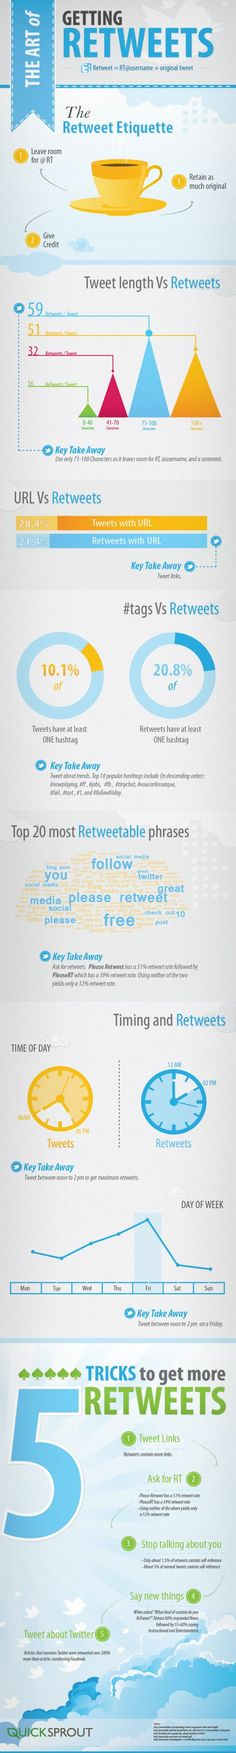 The Art of Getting Retweets : ( Infographic ) work, twitter, market, retweet, social media, art, busi, socialmedia, media infograph